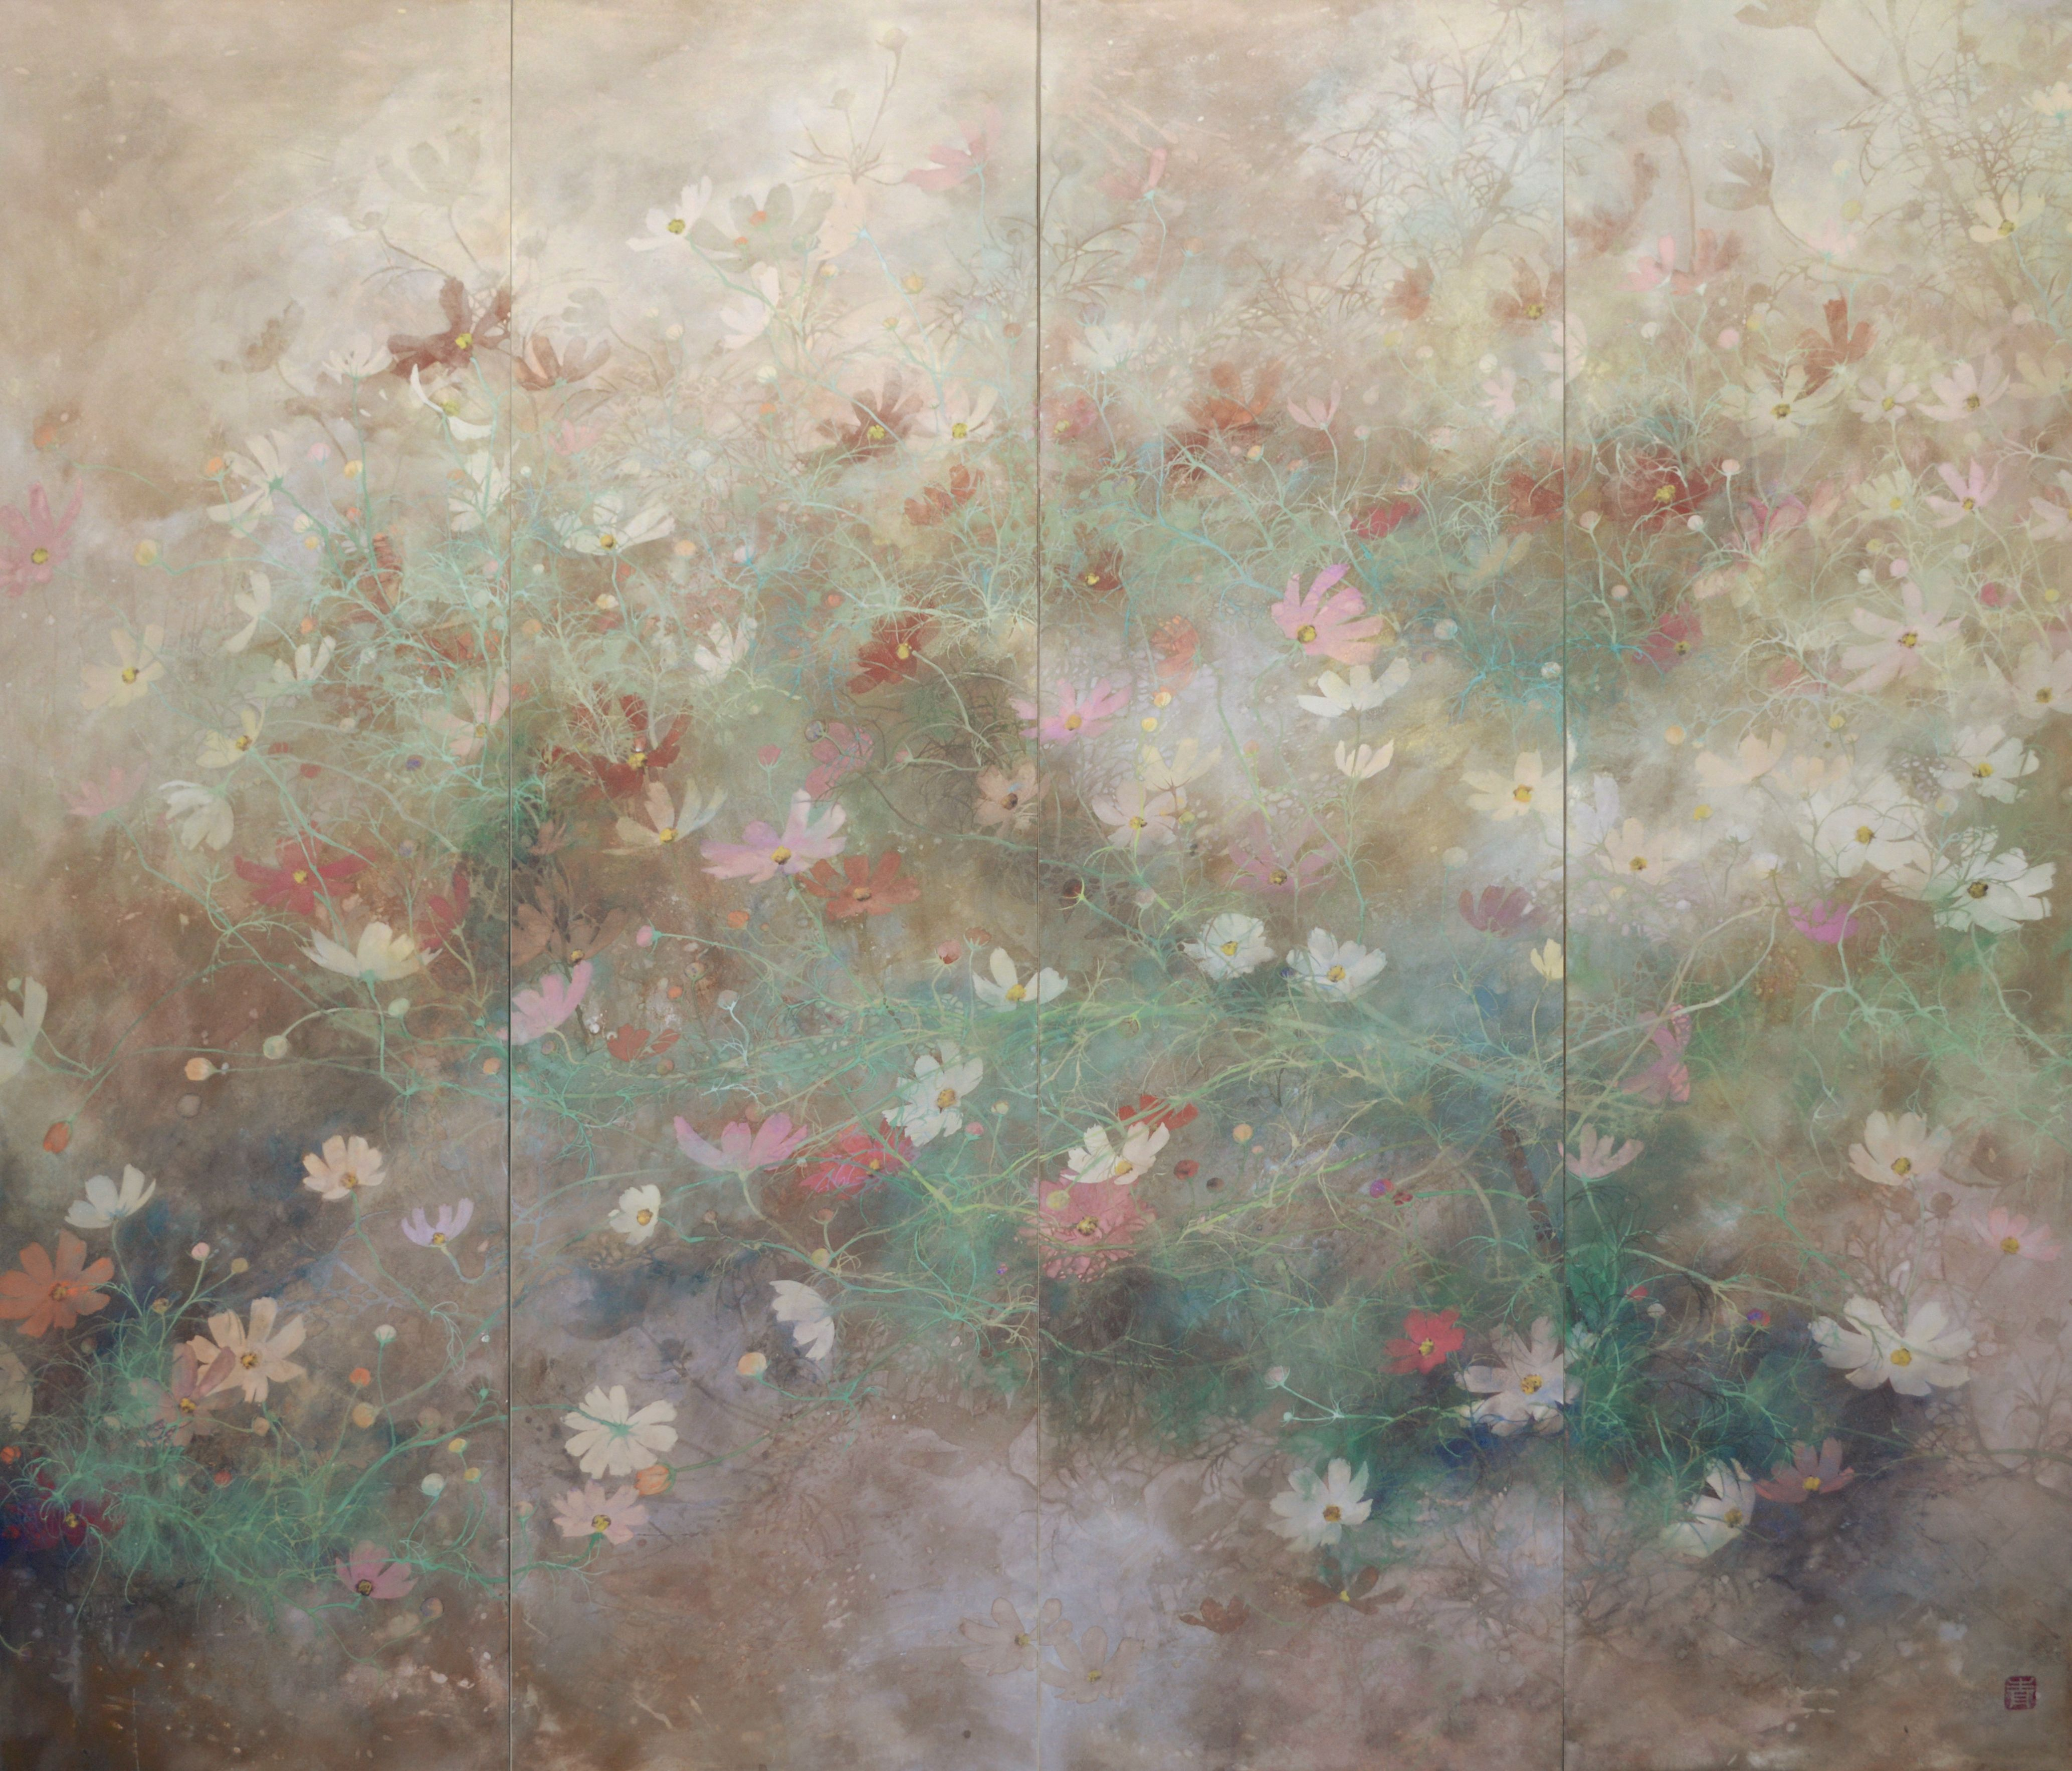 amour,Chen Yiching,Peinture